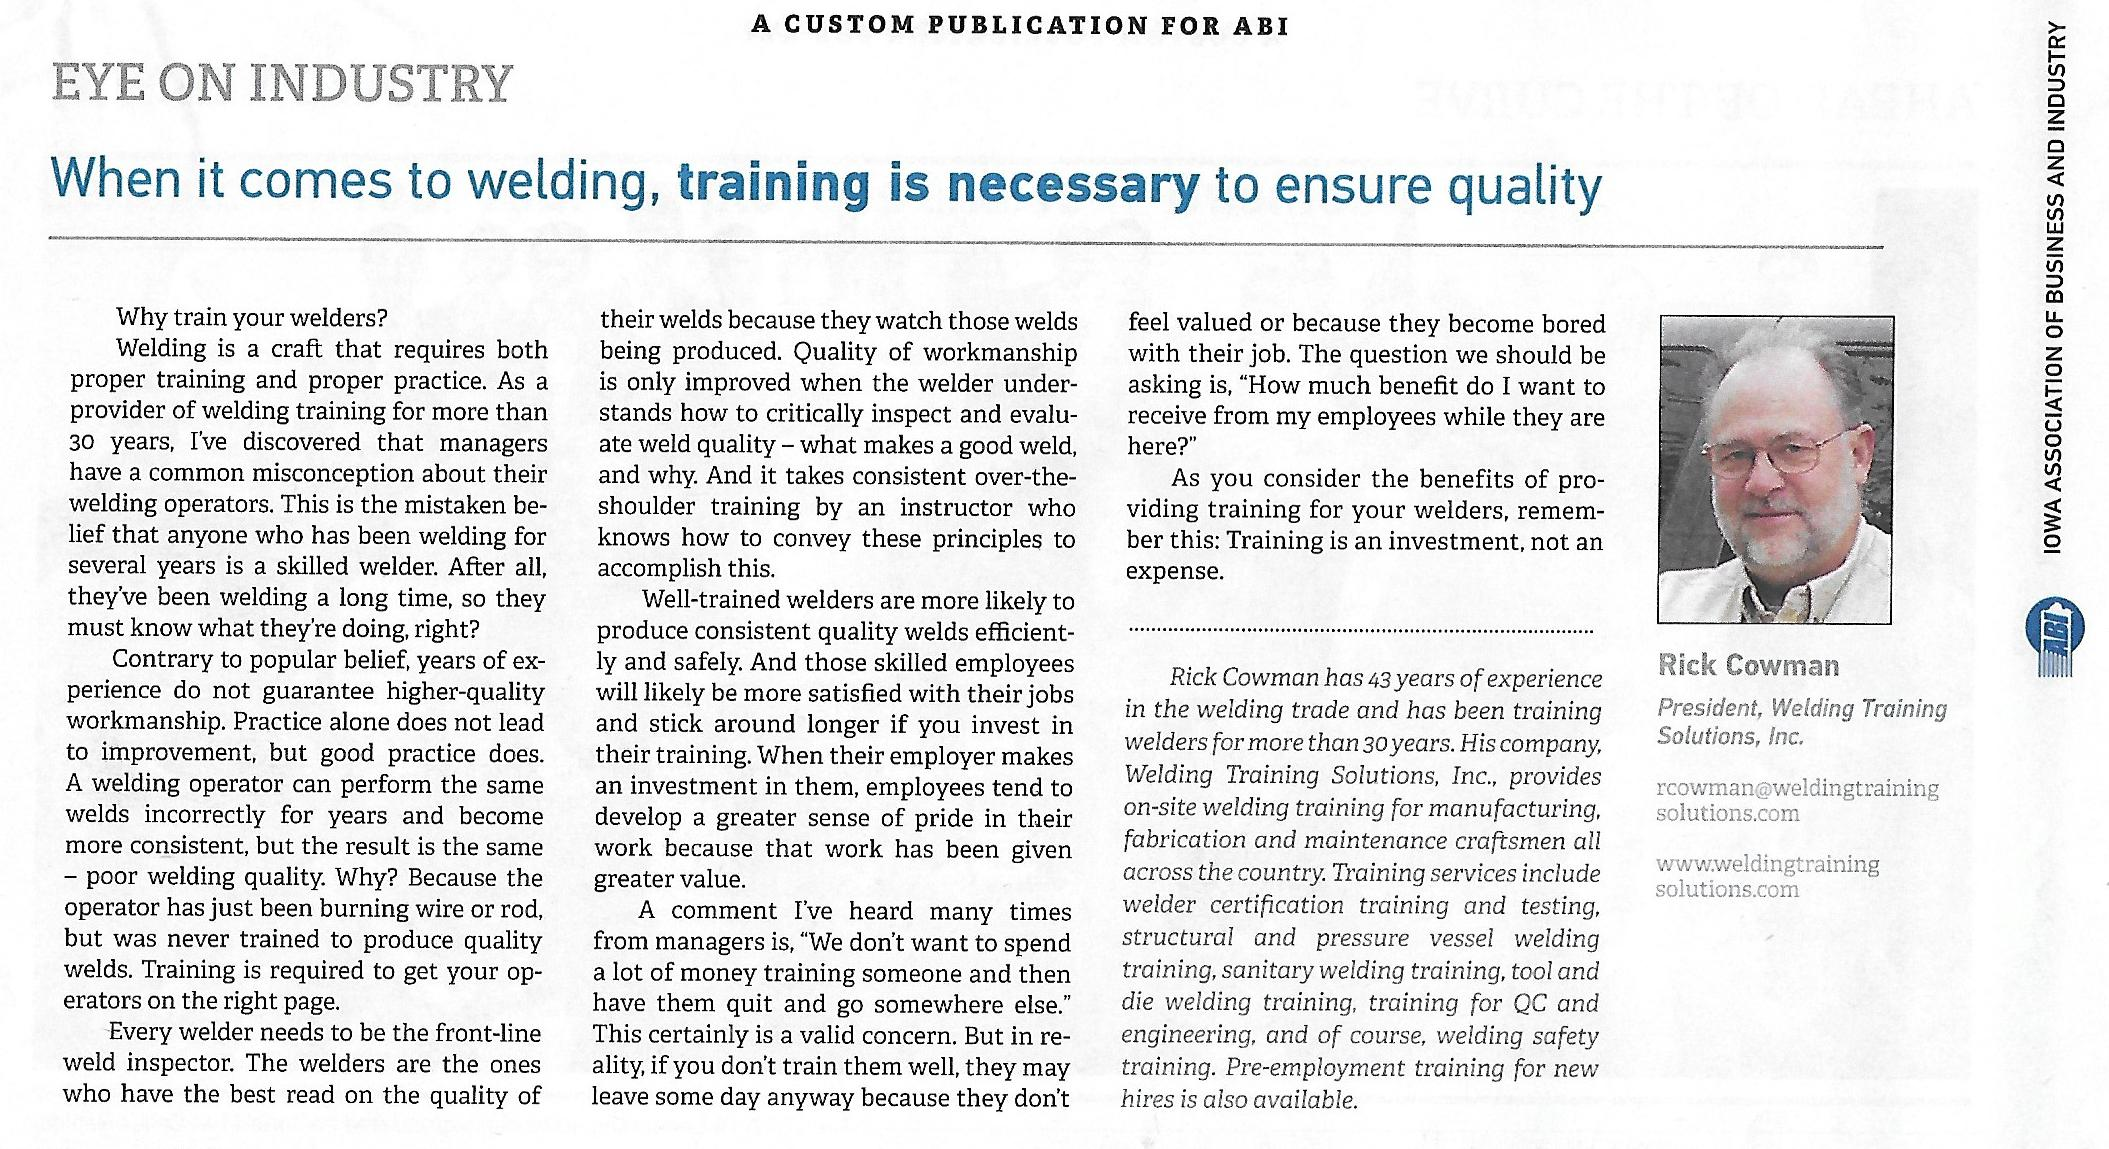 Welding Training Solutions Rick Cowman Iabi Mag 2